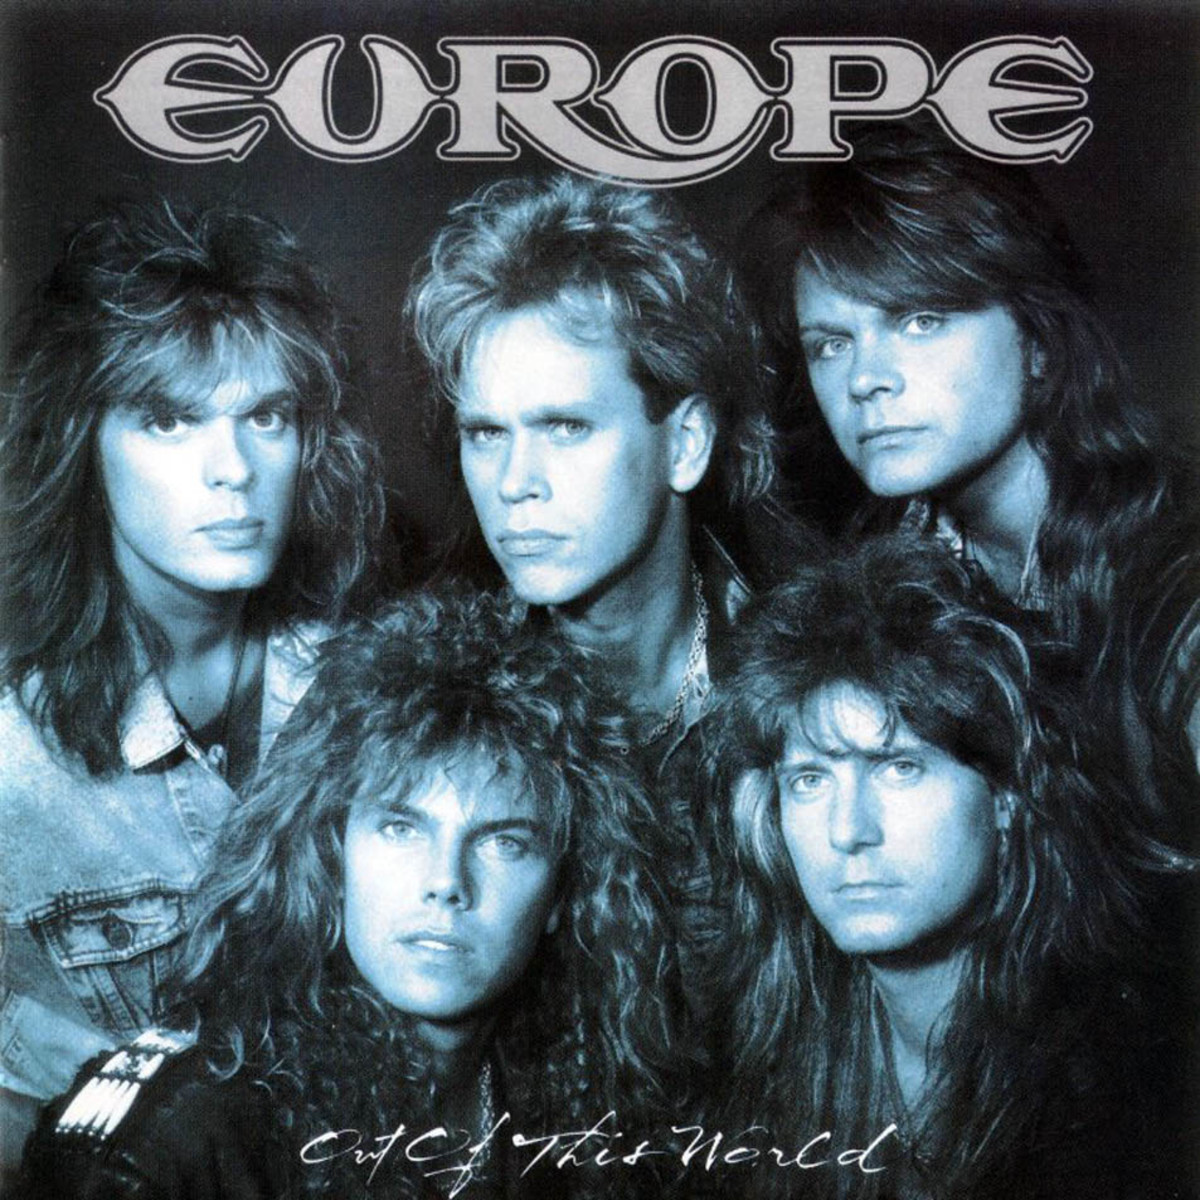 Vocalist Joey Tempest is pictured on the bottom row (first one) followed by Kee Marcello next to him.